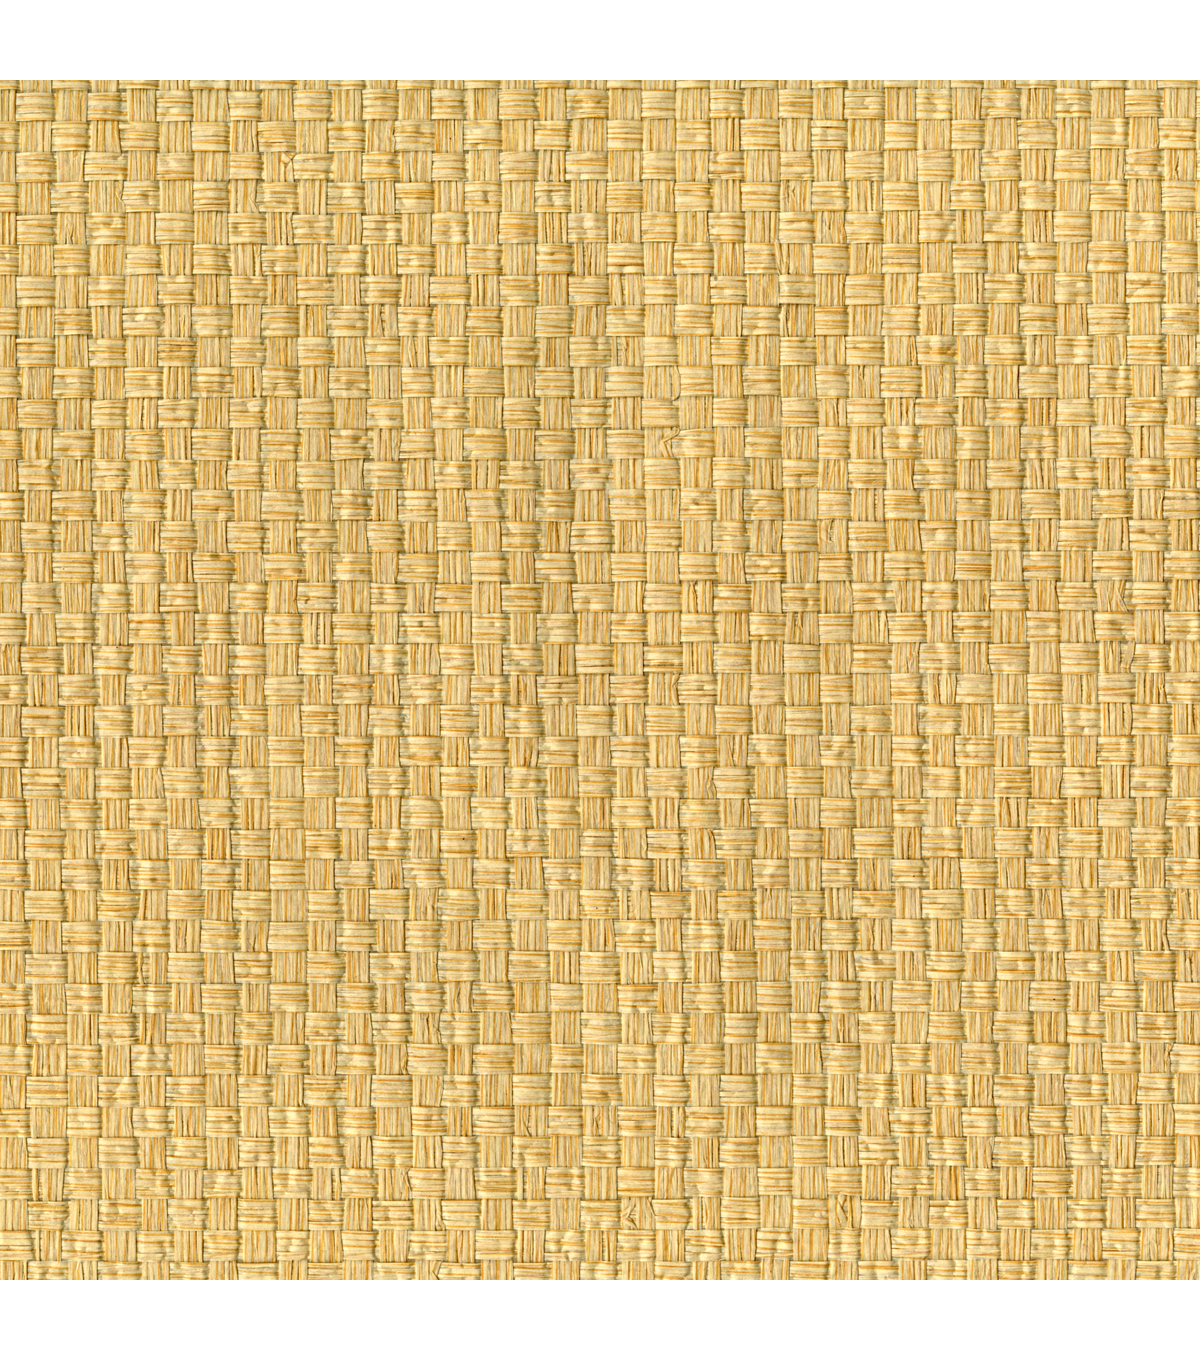 Kuan-Yin Cream Grasscloth Wallpaper Sample